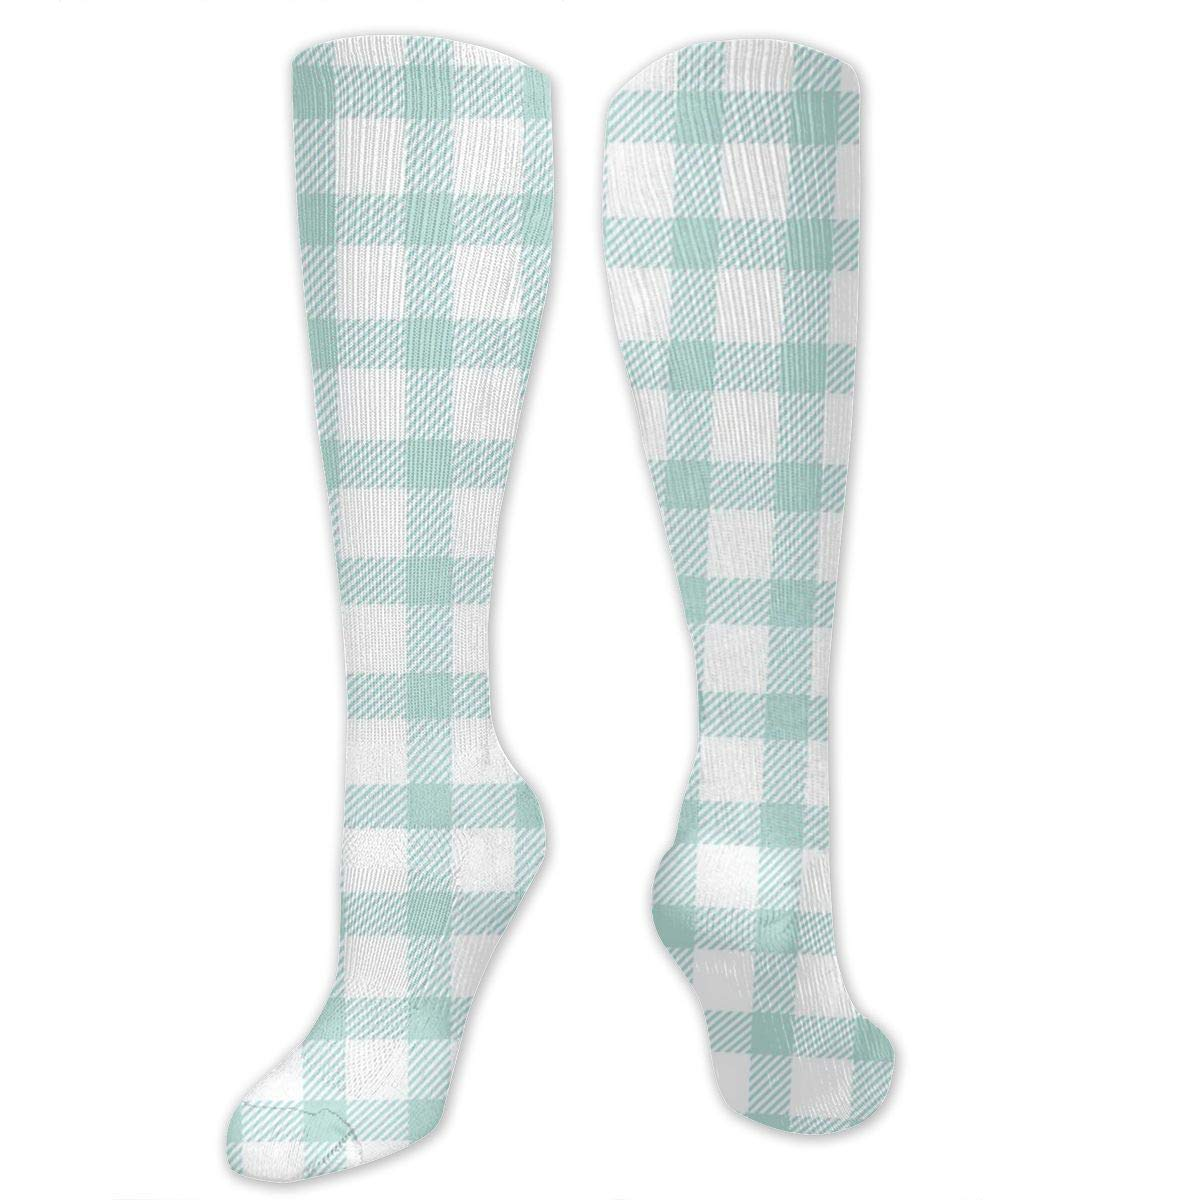 Starballest White-Green Checks Socks for Women Tube Socks Thermal Socks